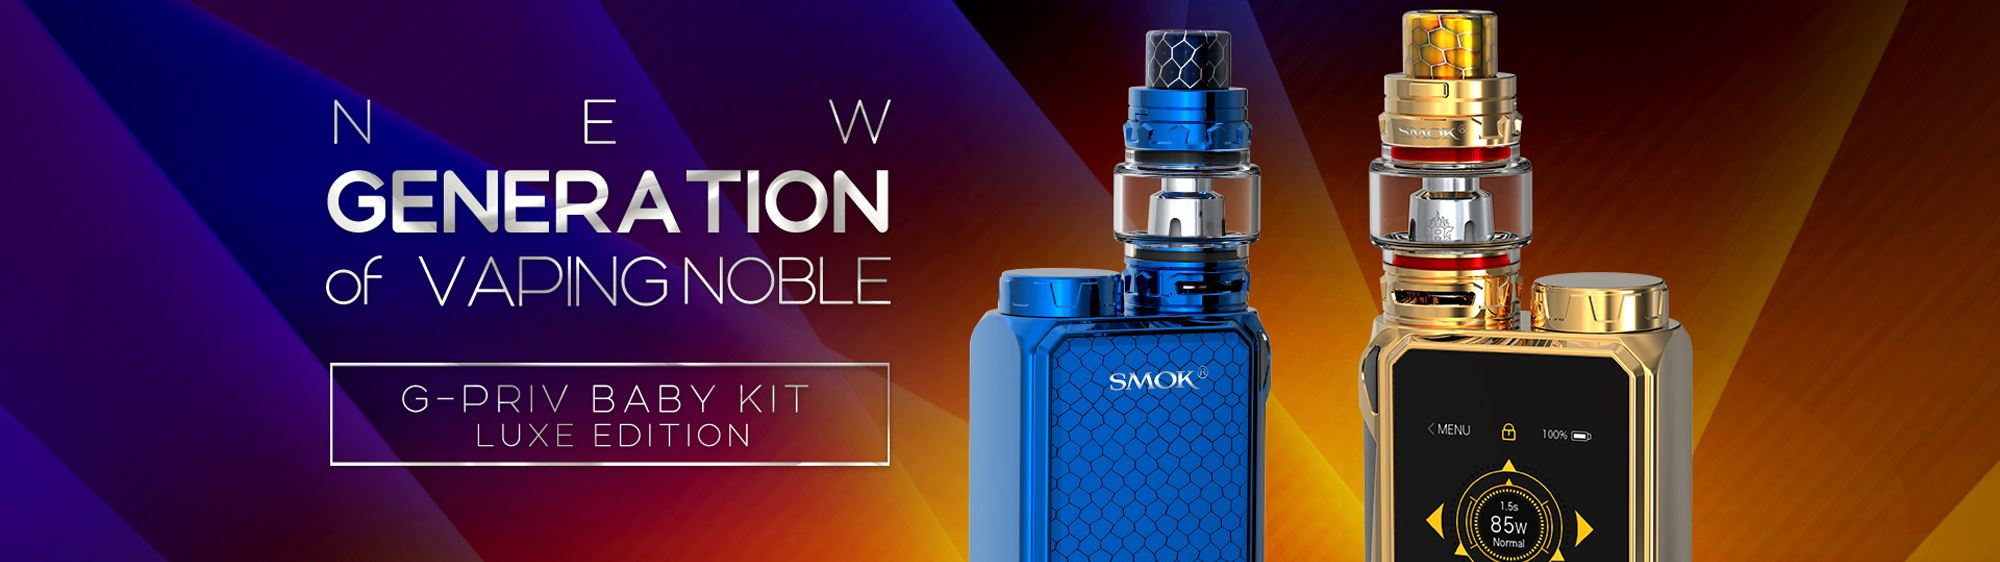 SMOK G-PRIV BABY LUXE EDITION BANNER